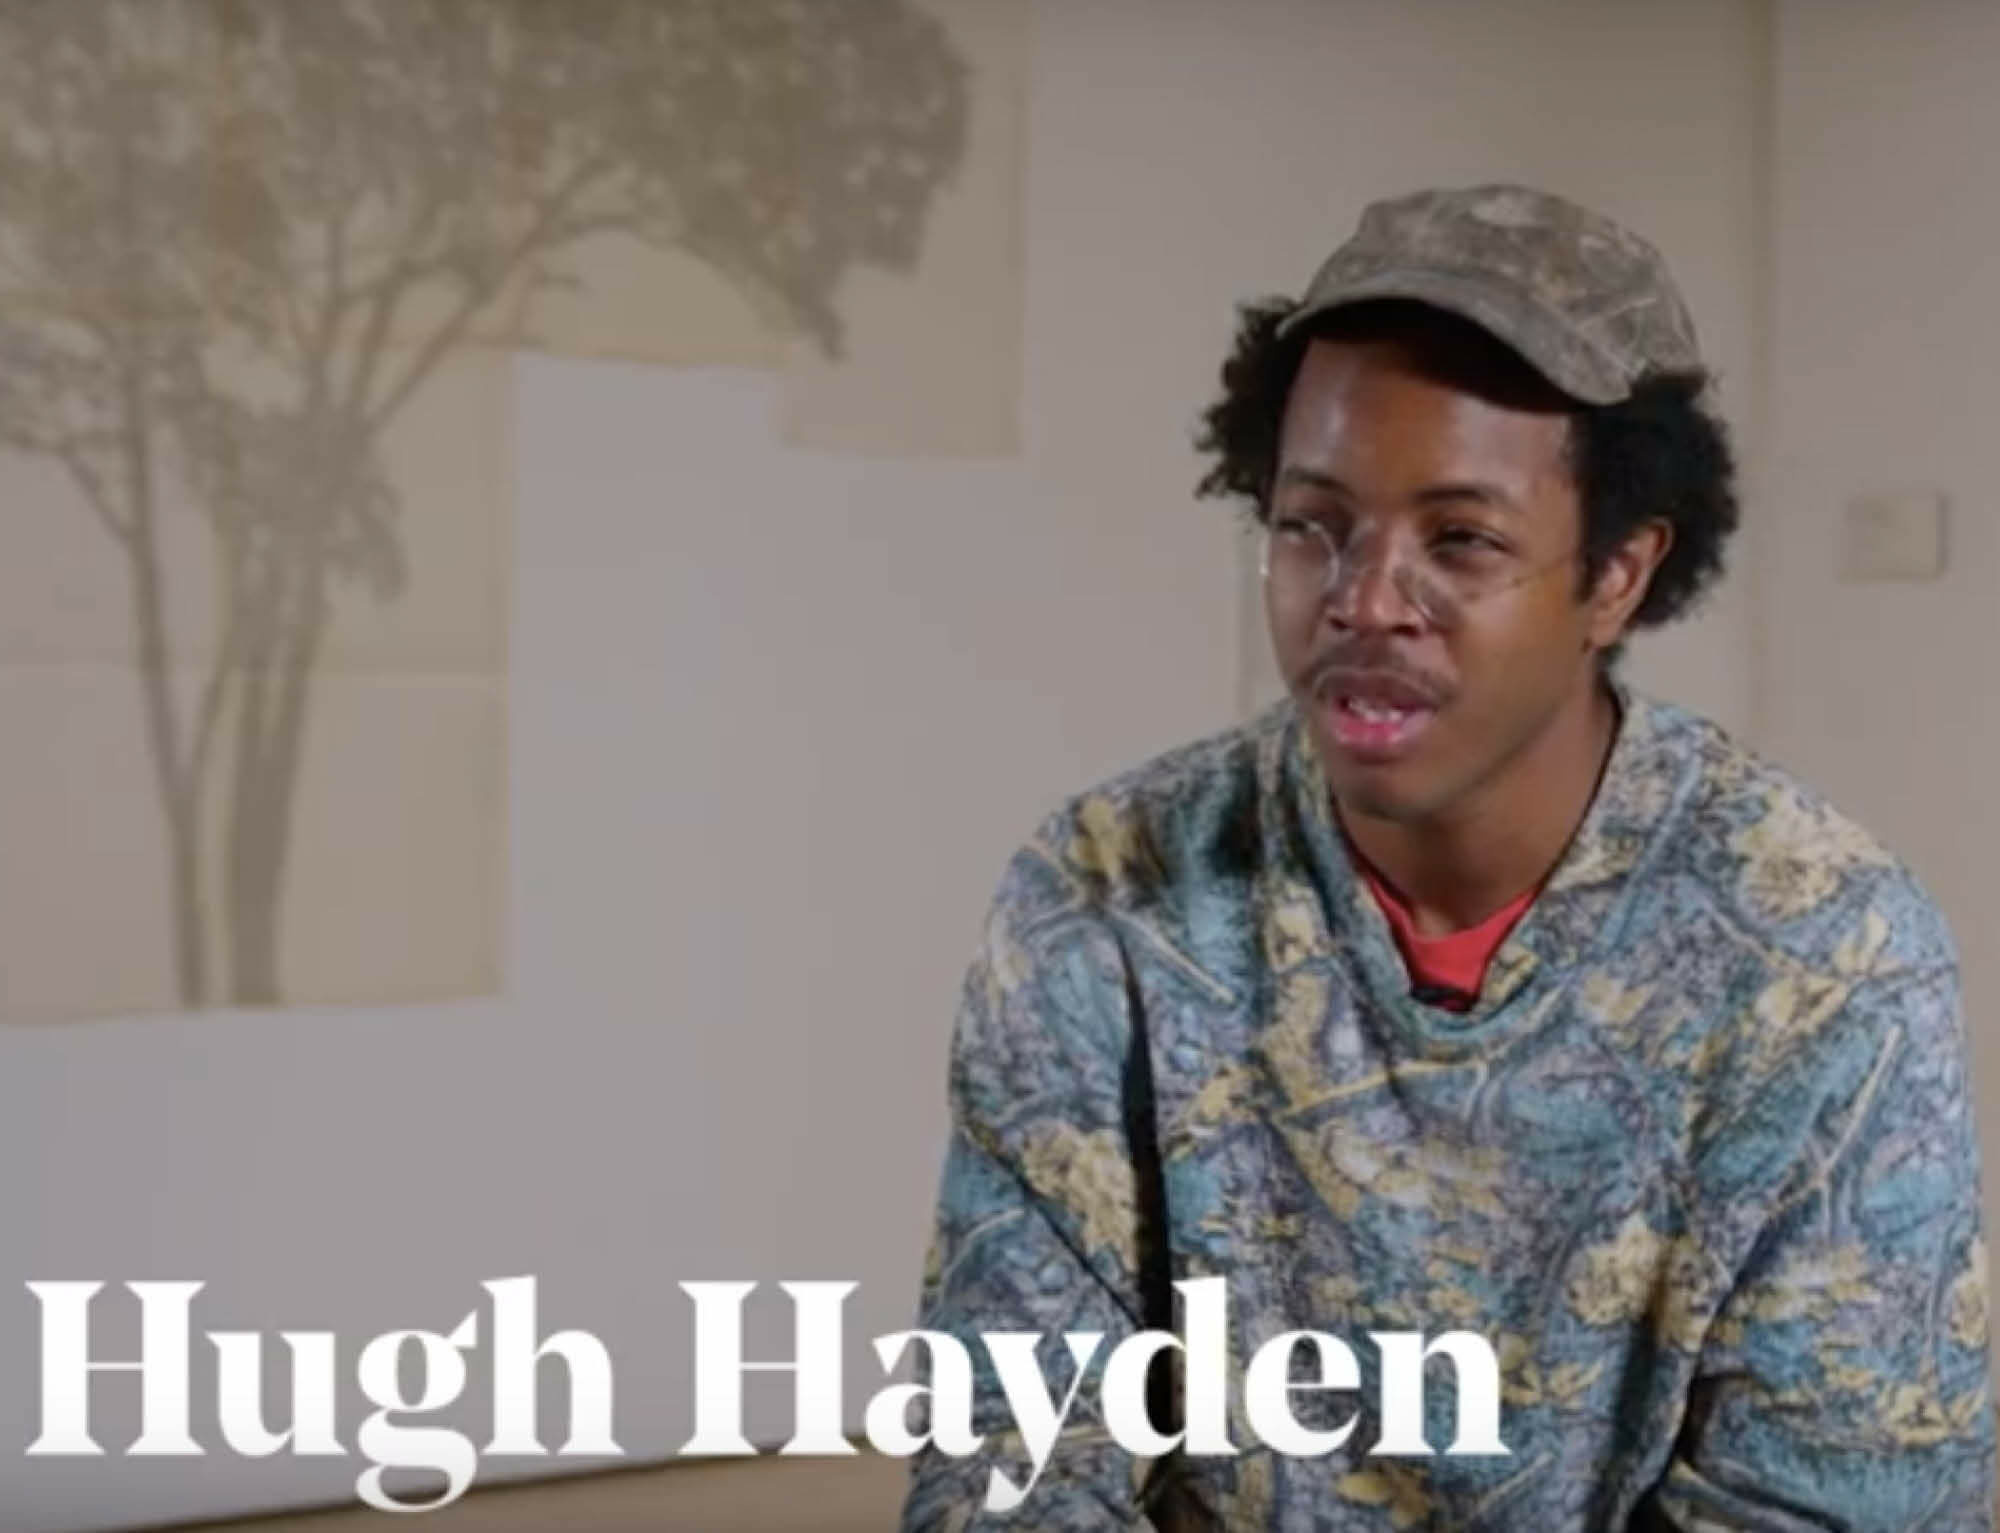 Hugh Hayden on 'Among the Trees'